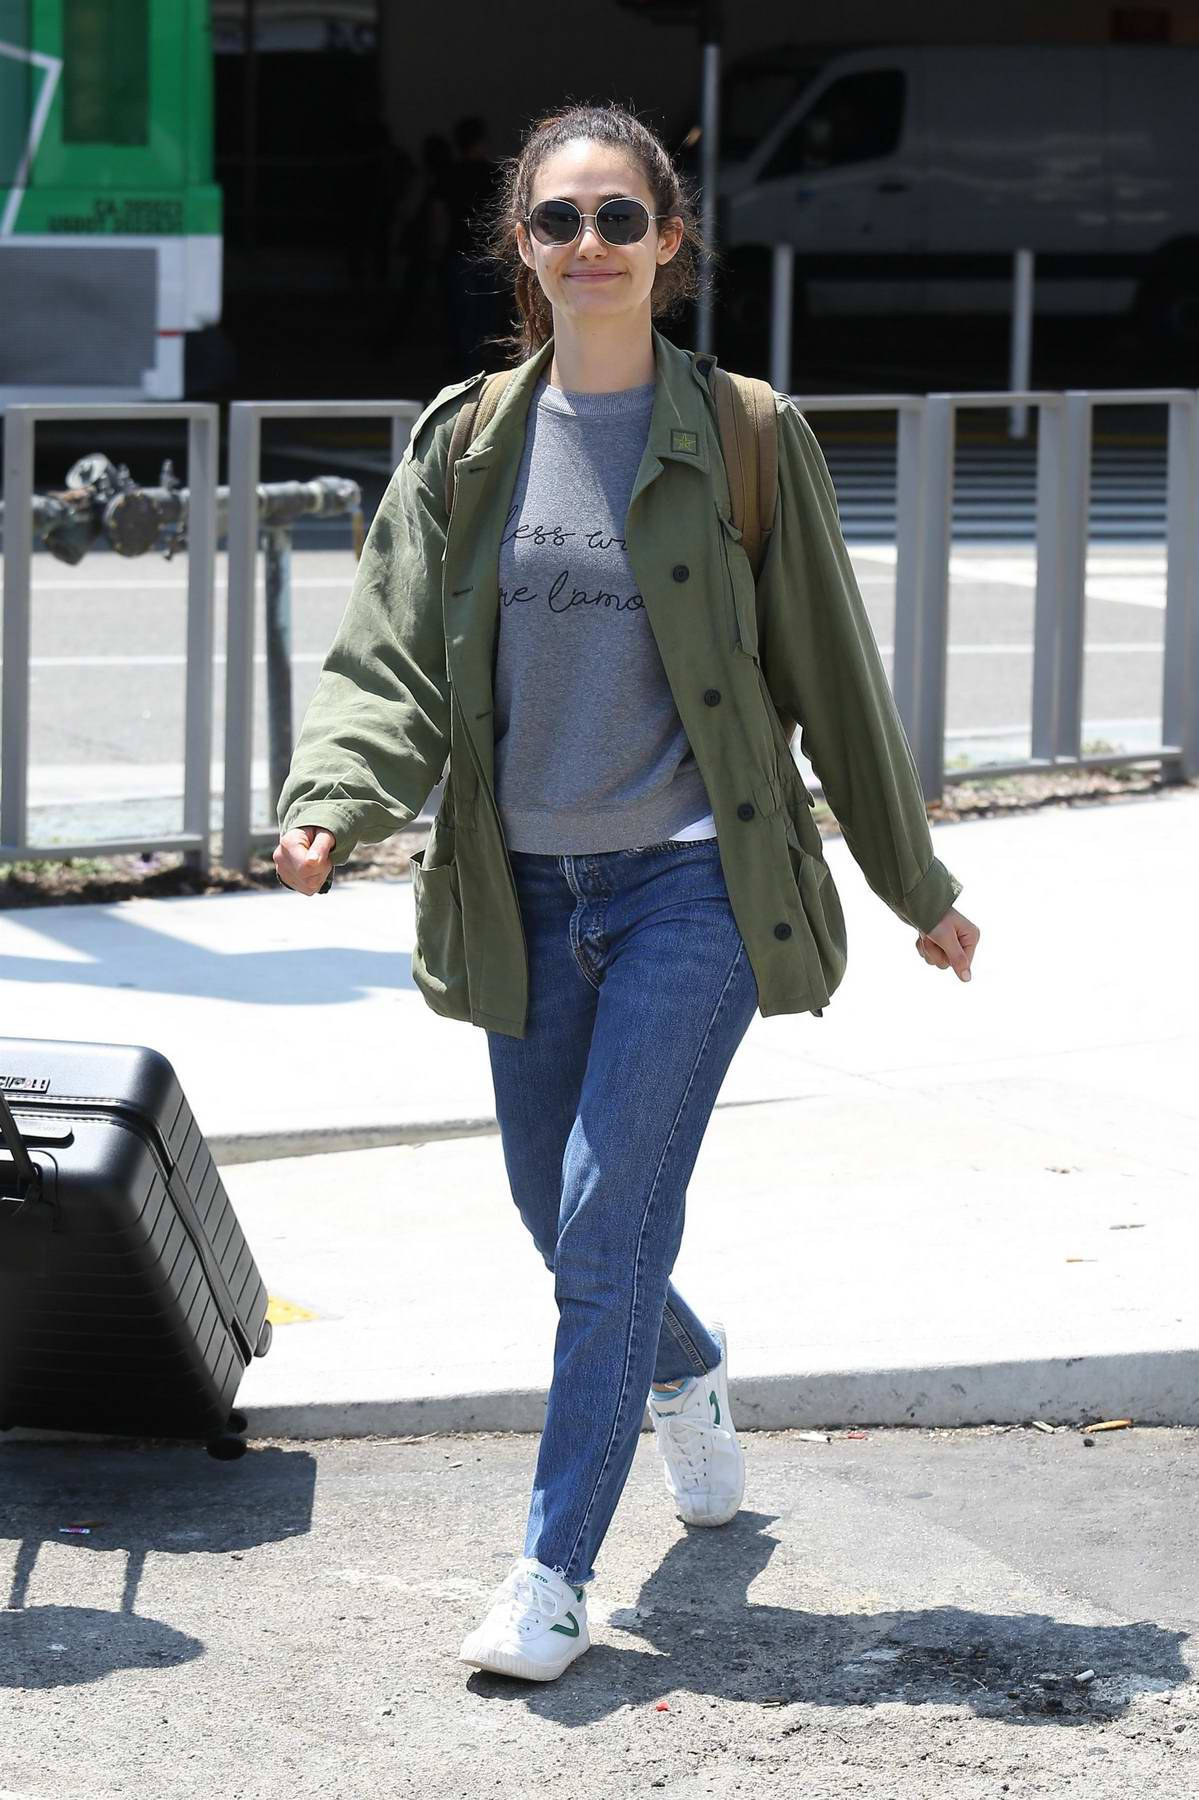 Emmy Rossum arrives to LAX Airport in Los Angeles